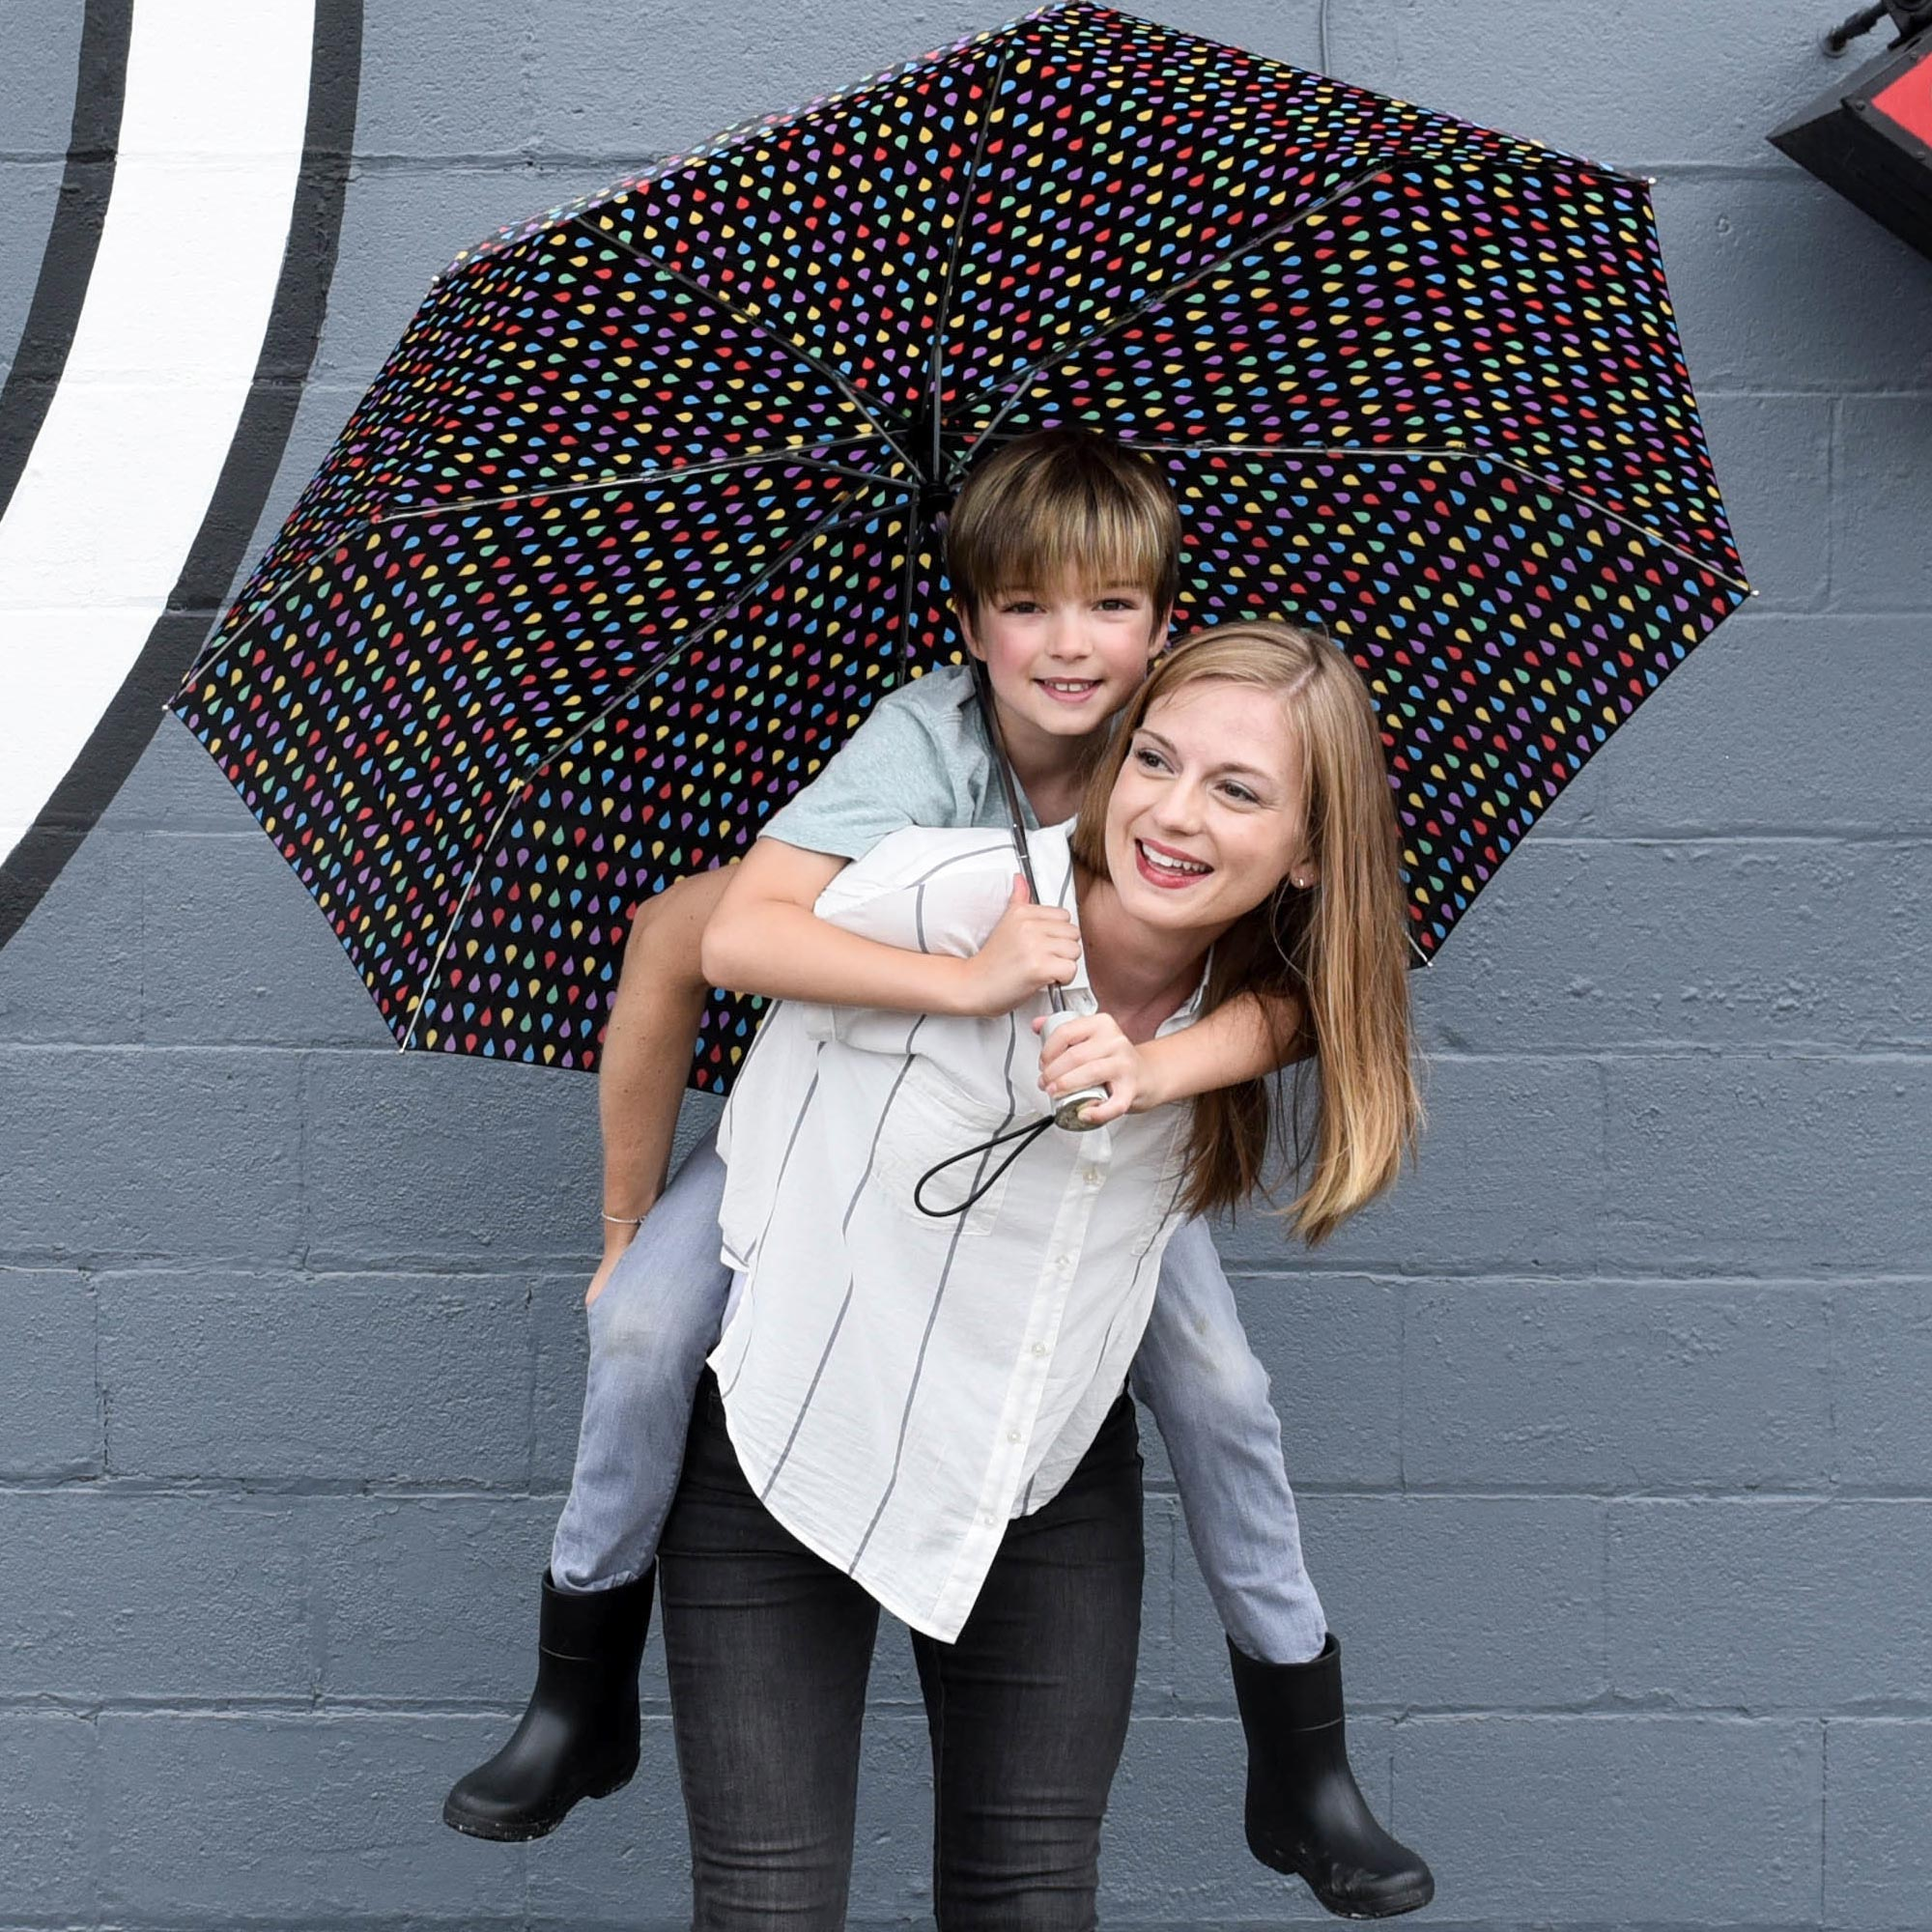 son riding on mother's back holding the mini compact umbrella with sunguard. Both laughing and smiling